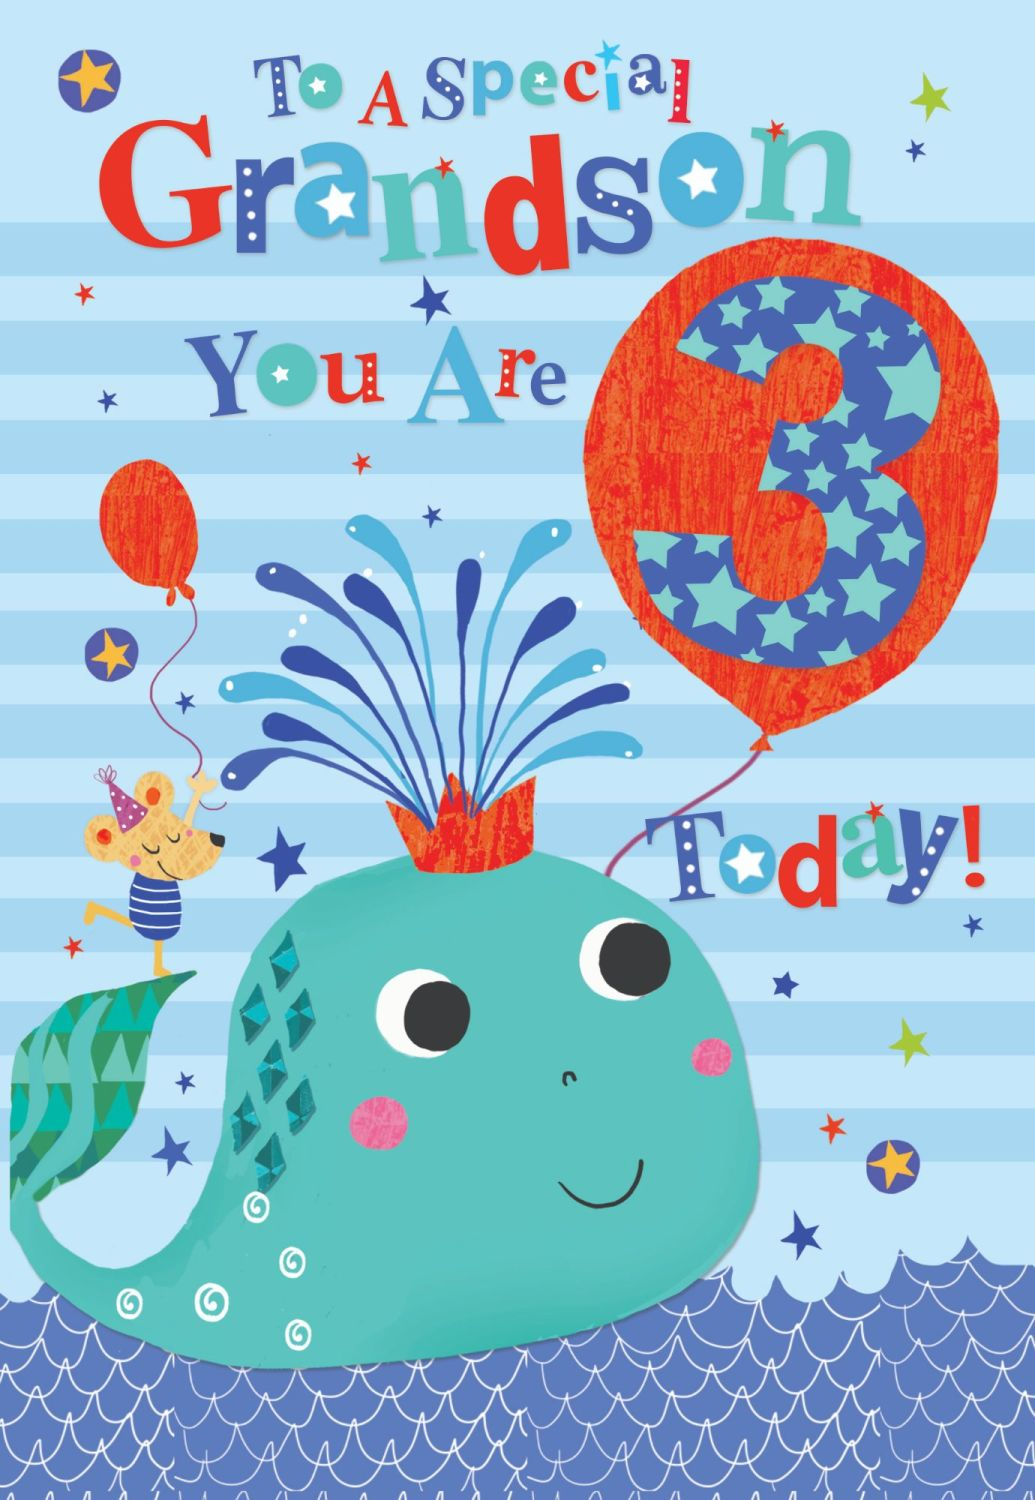 3rd Birthday Cards For Grandson - TO A Special GRANDSON - YOU Are 3 TODAY -